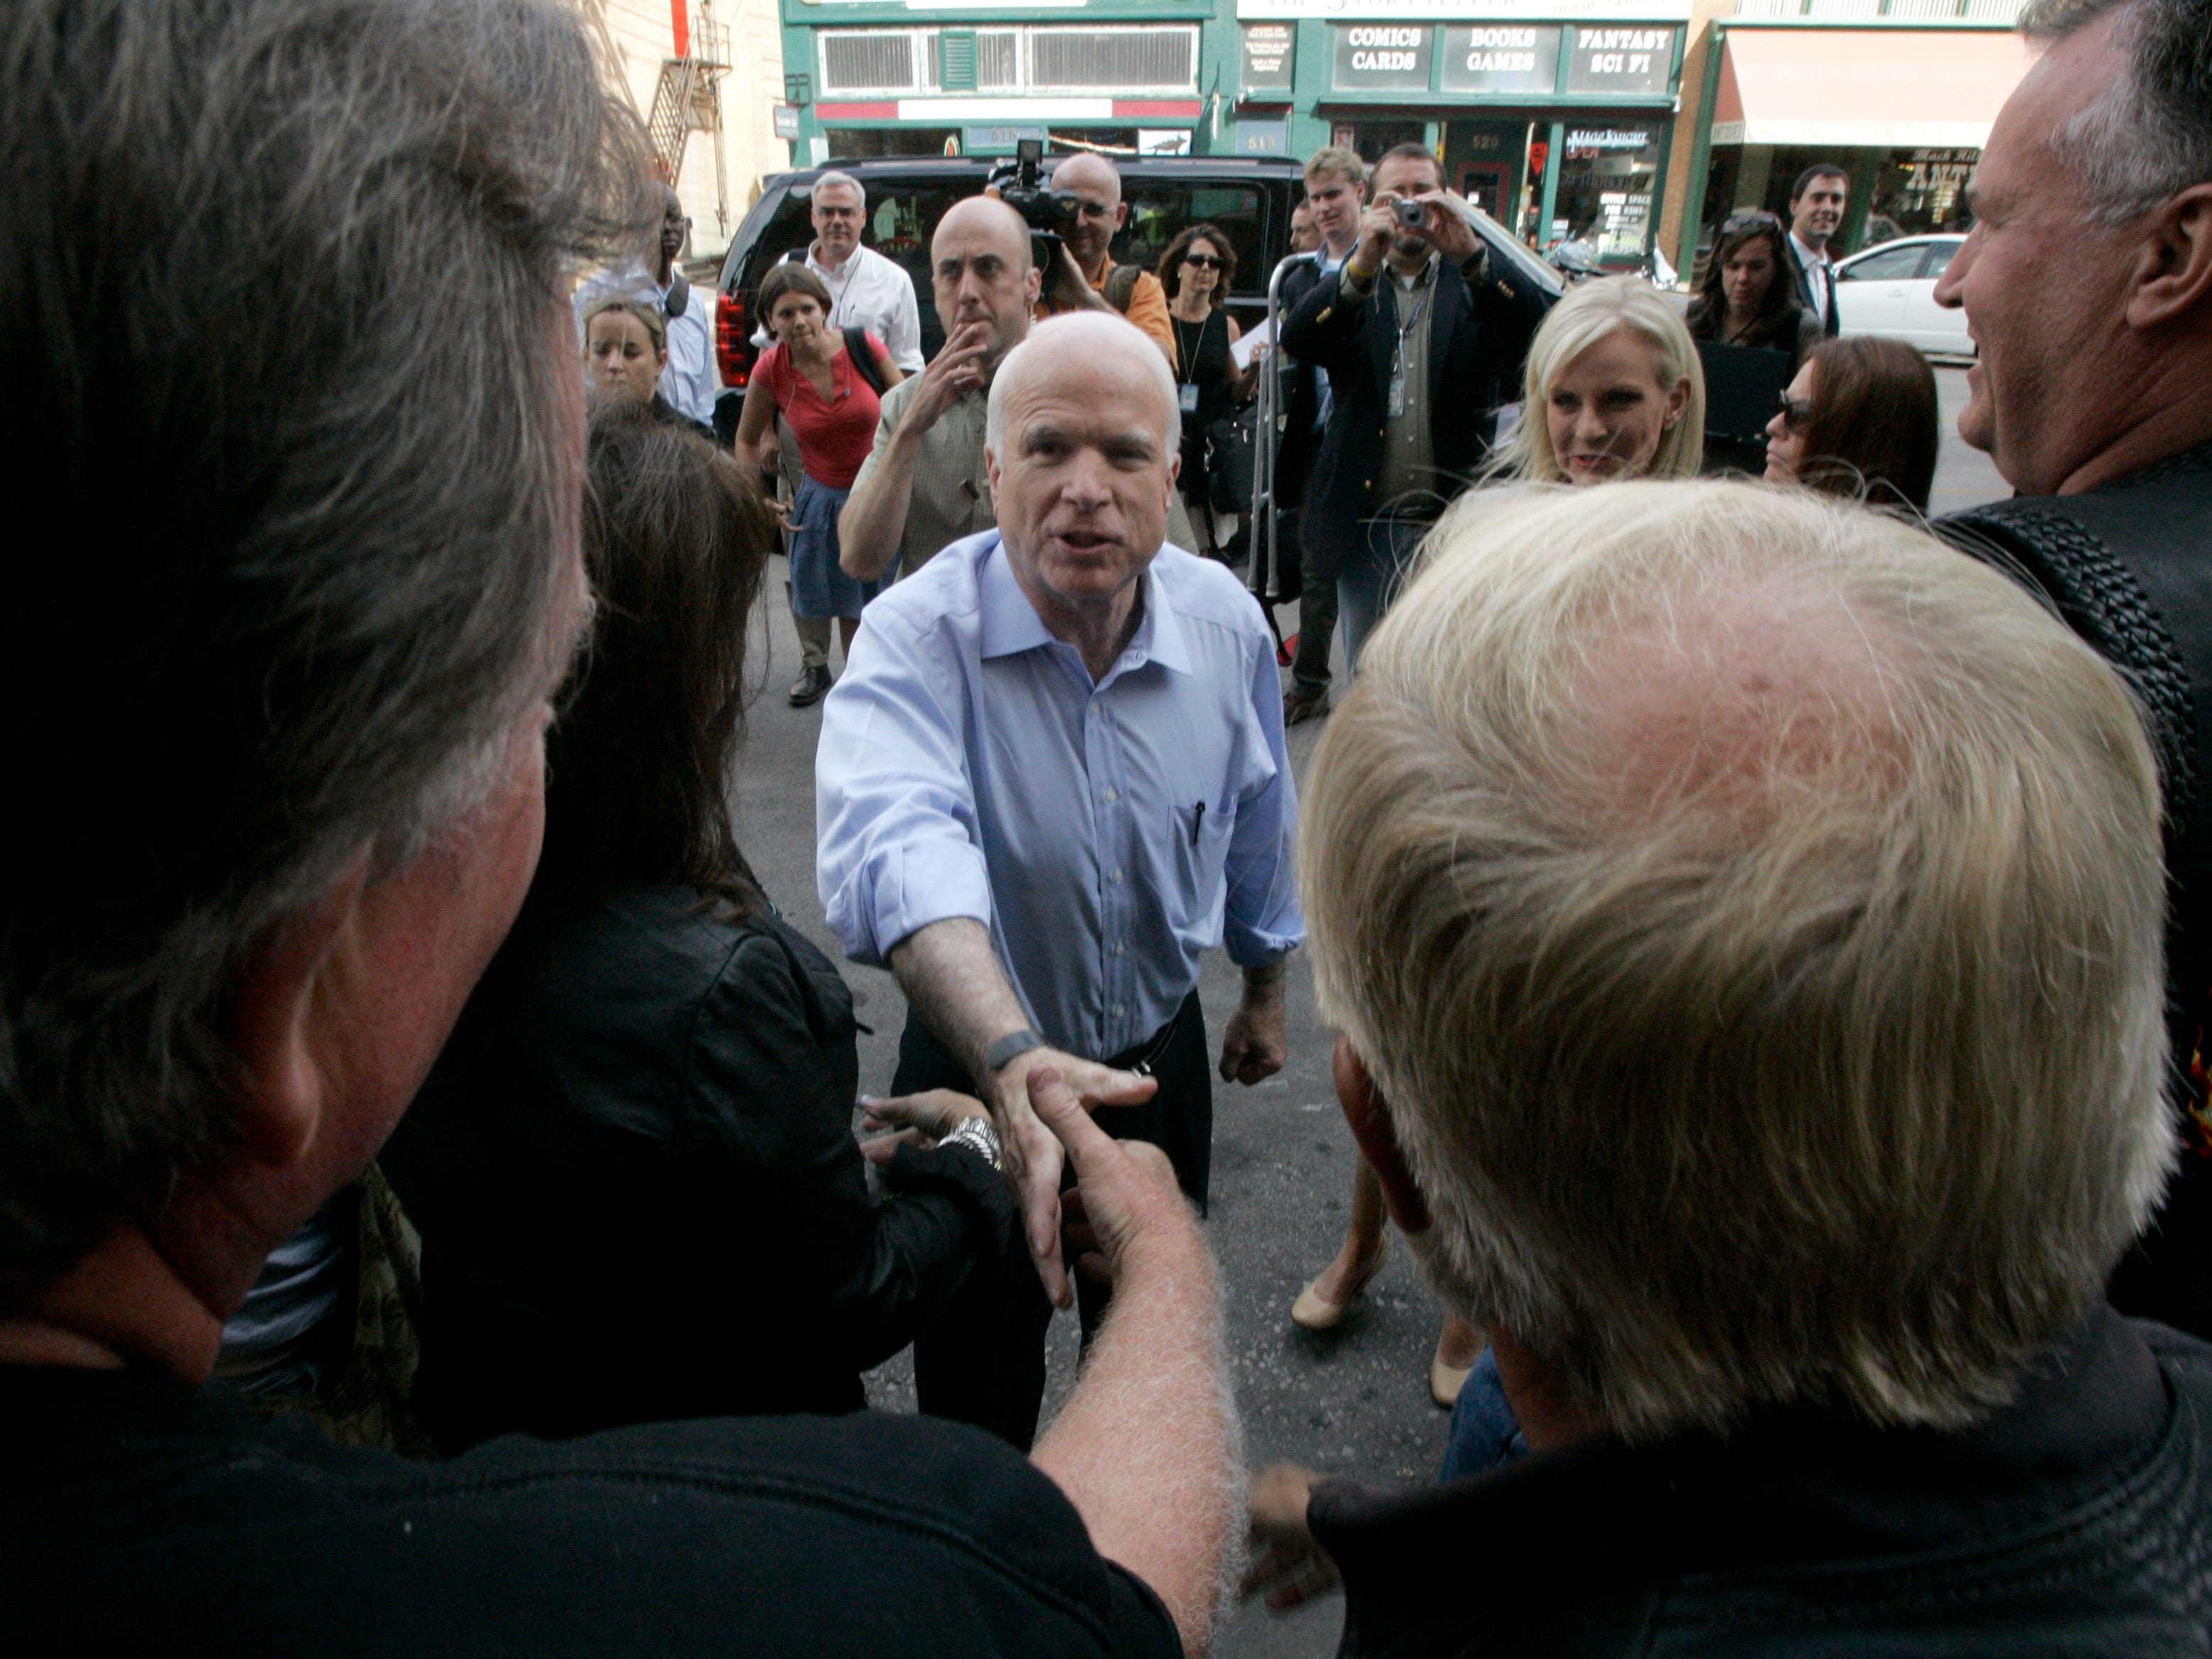 2008: Republican presidential candidate Sen. John McCain, R-Ariz., greets the crowd in Rapid City, S.D. McCain also planned to visit the annual motorcycle rally in Sturgis.